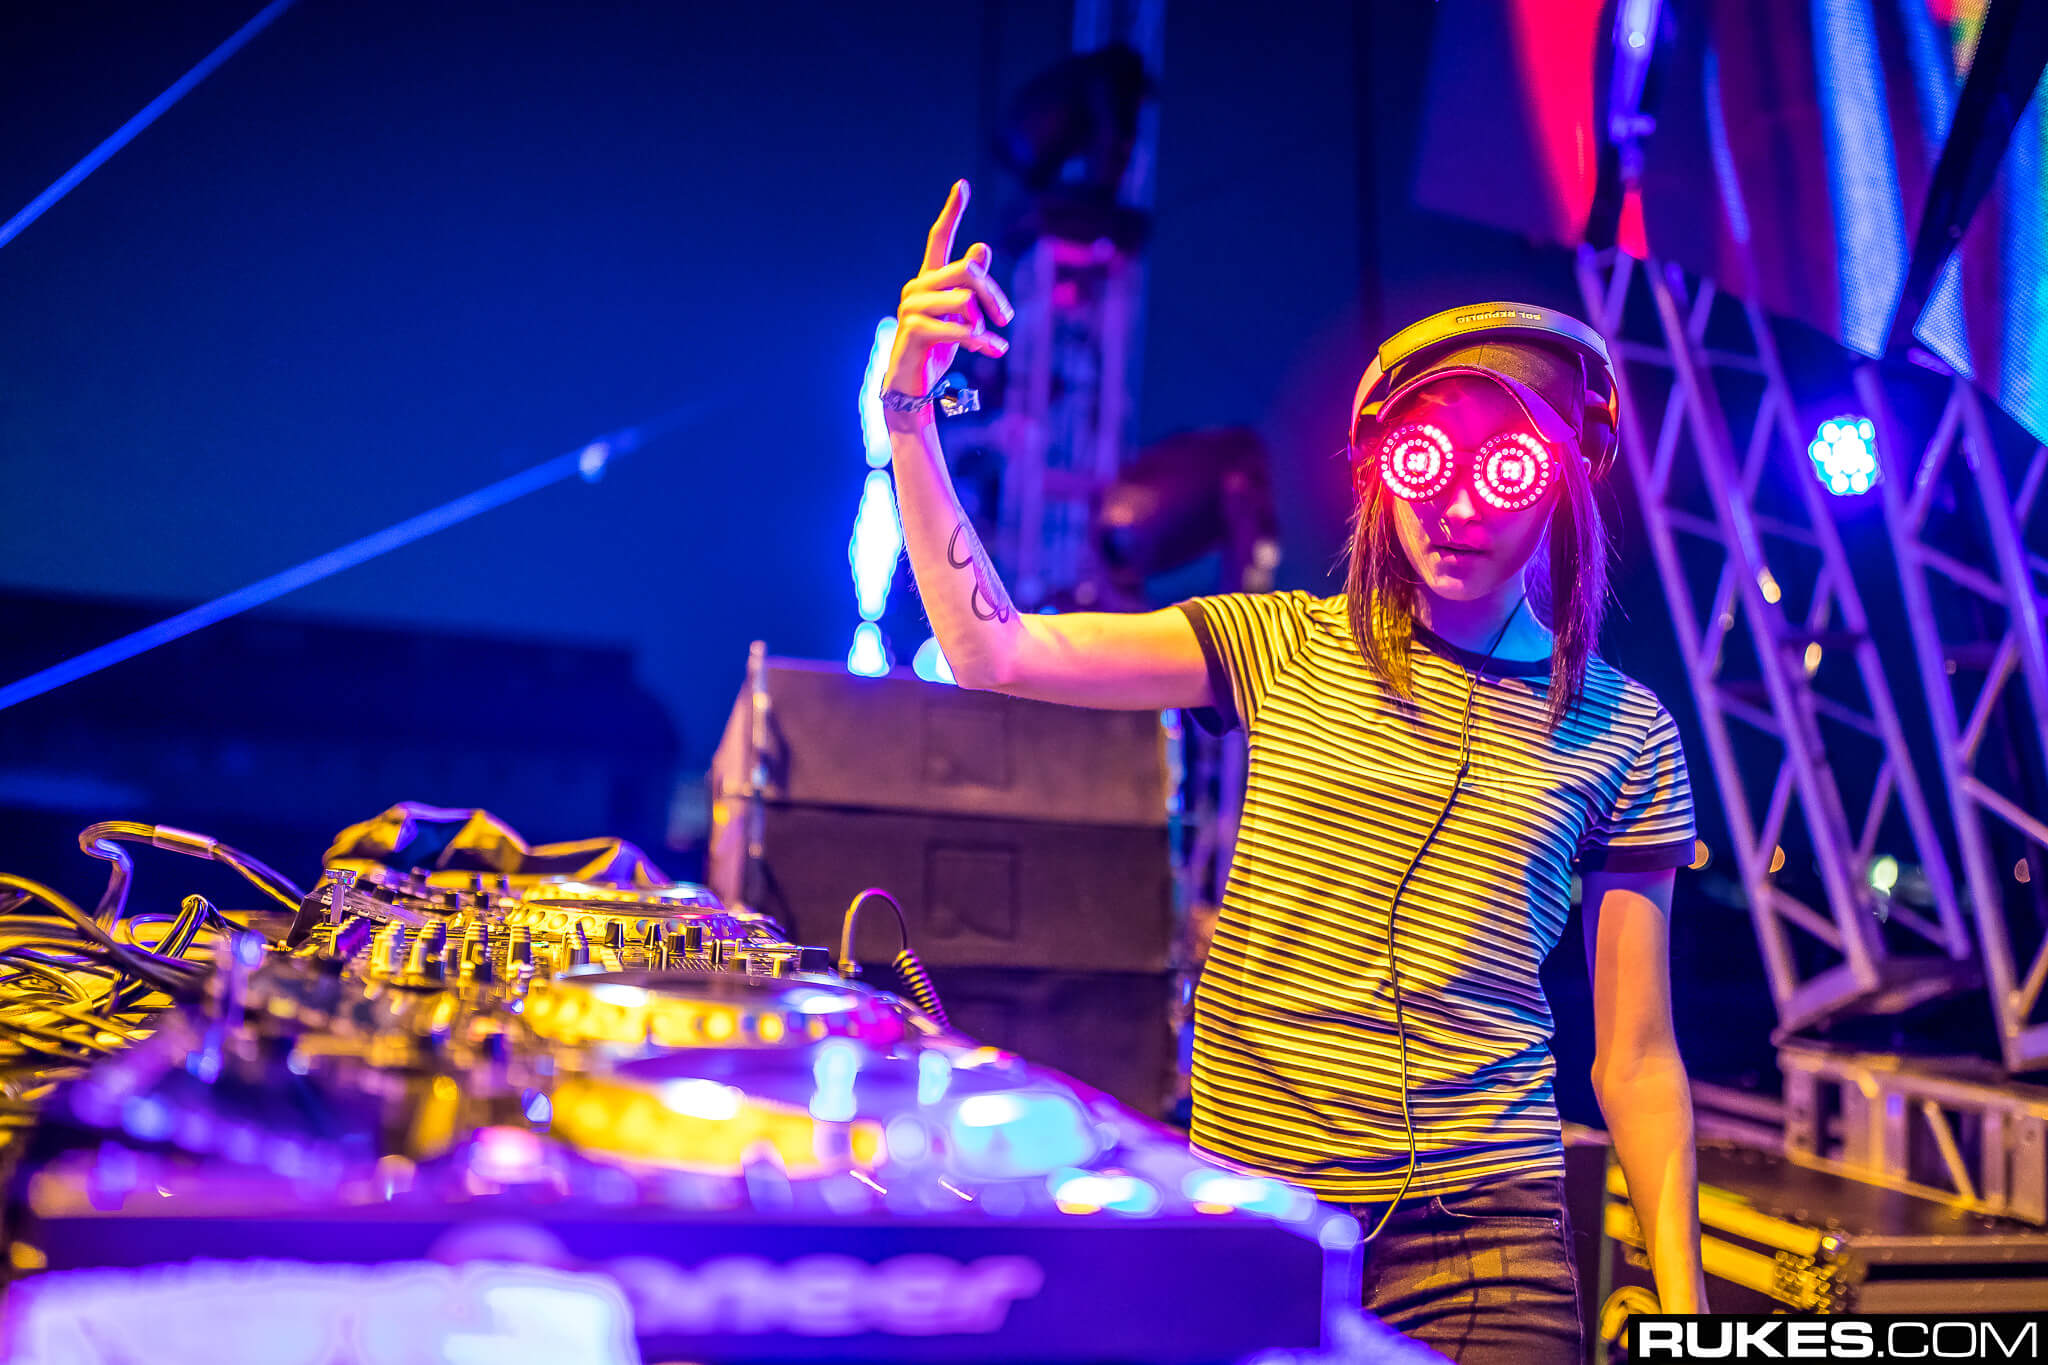 rezz live at something wonderful festival